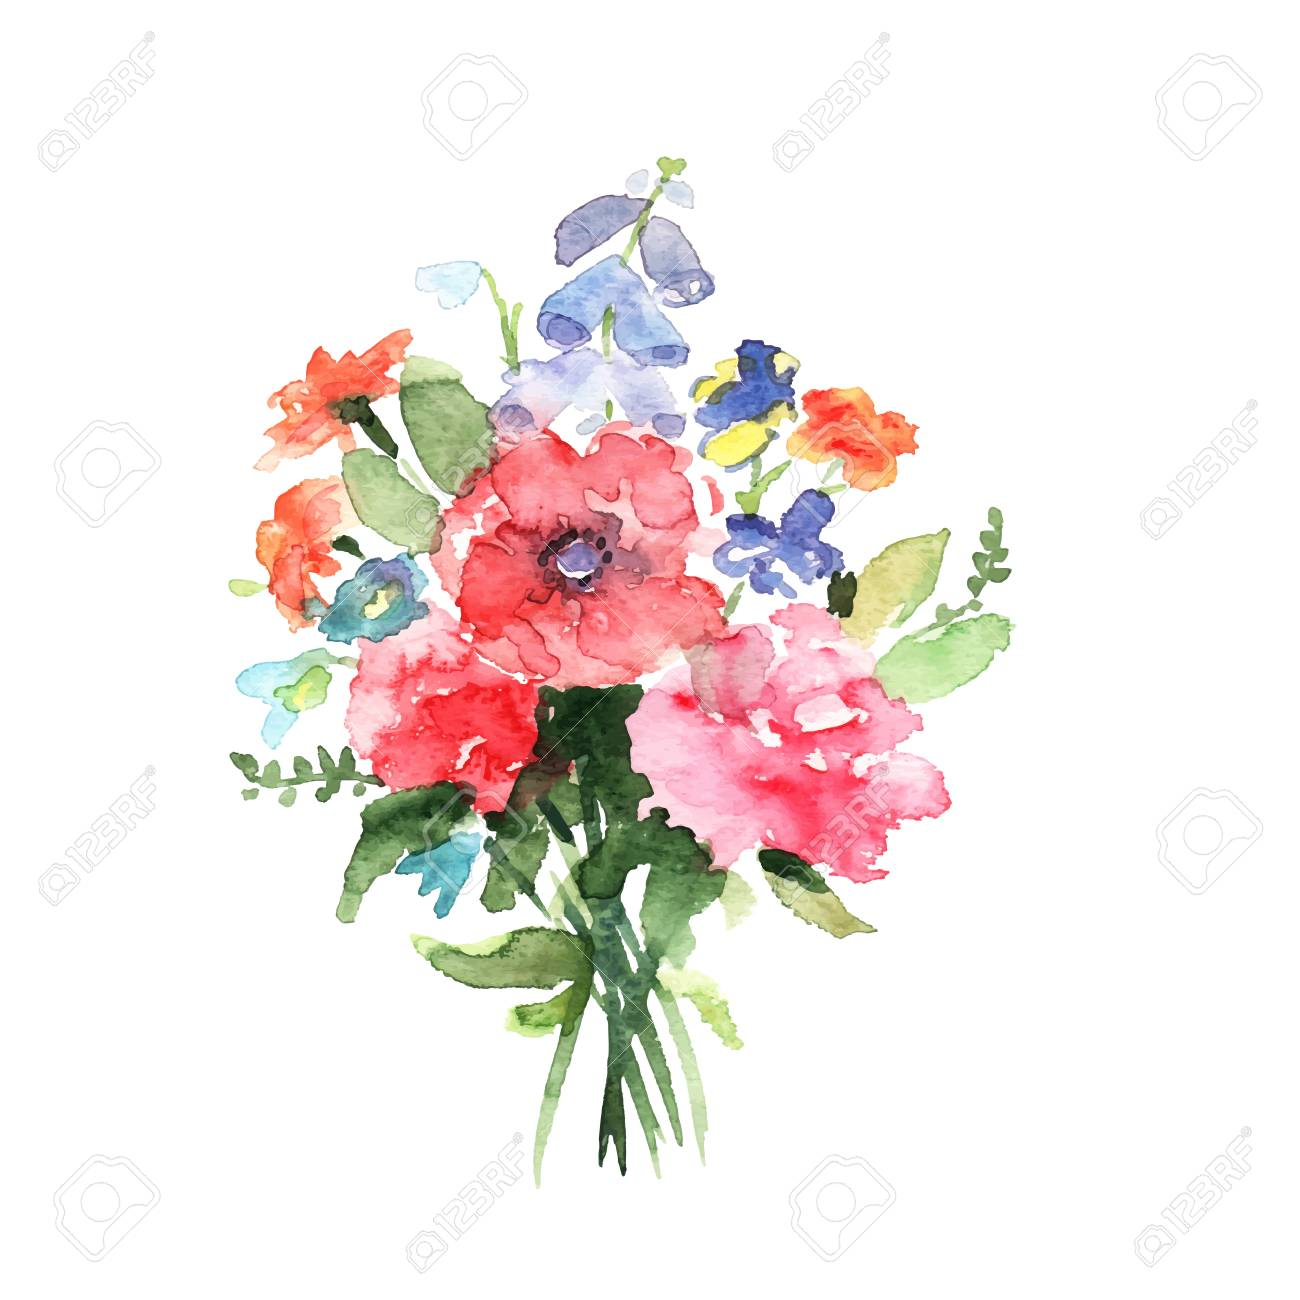 Watercolor Floral Bouquet Royalty Free Cliparts Vectors And Stock